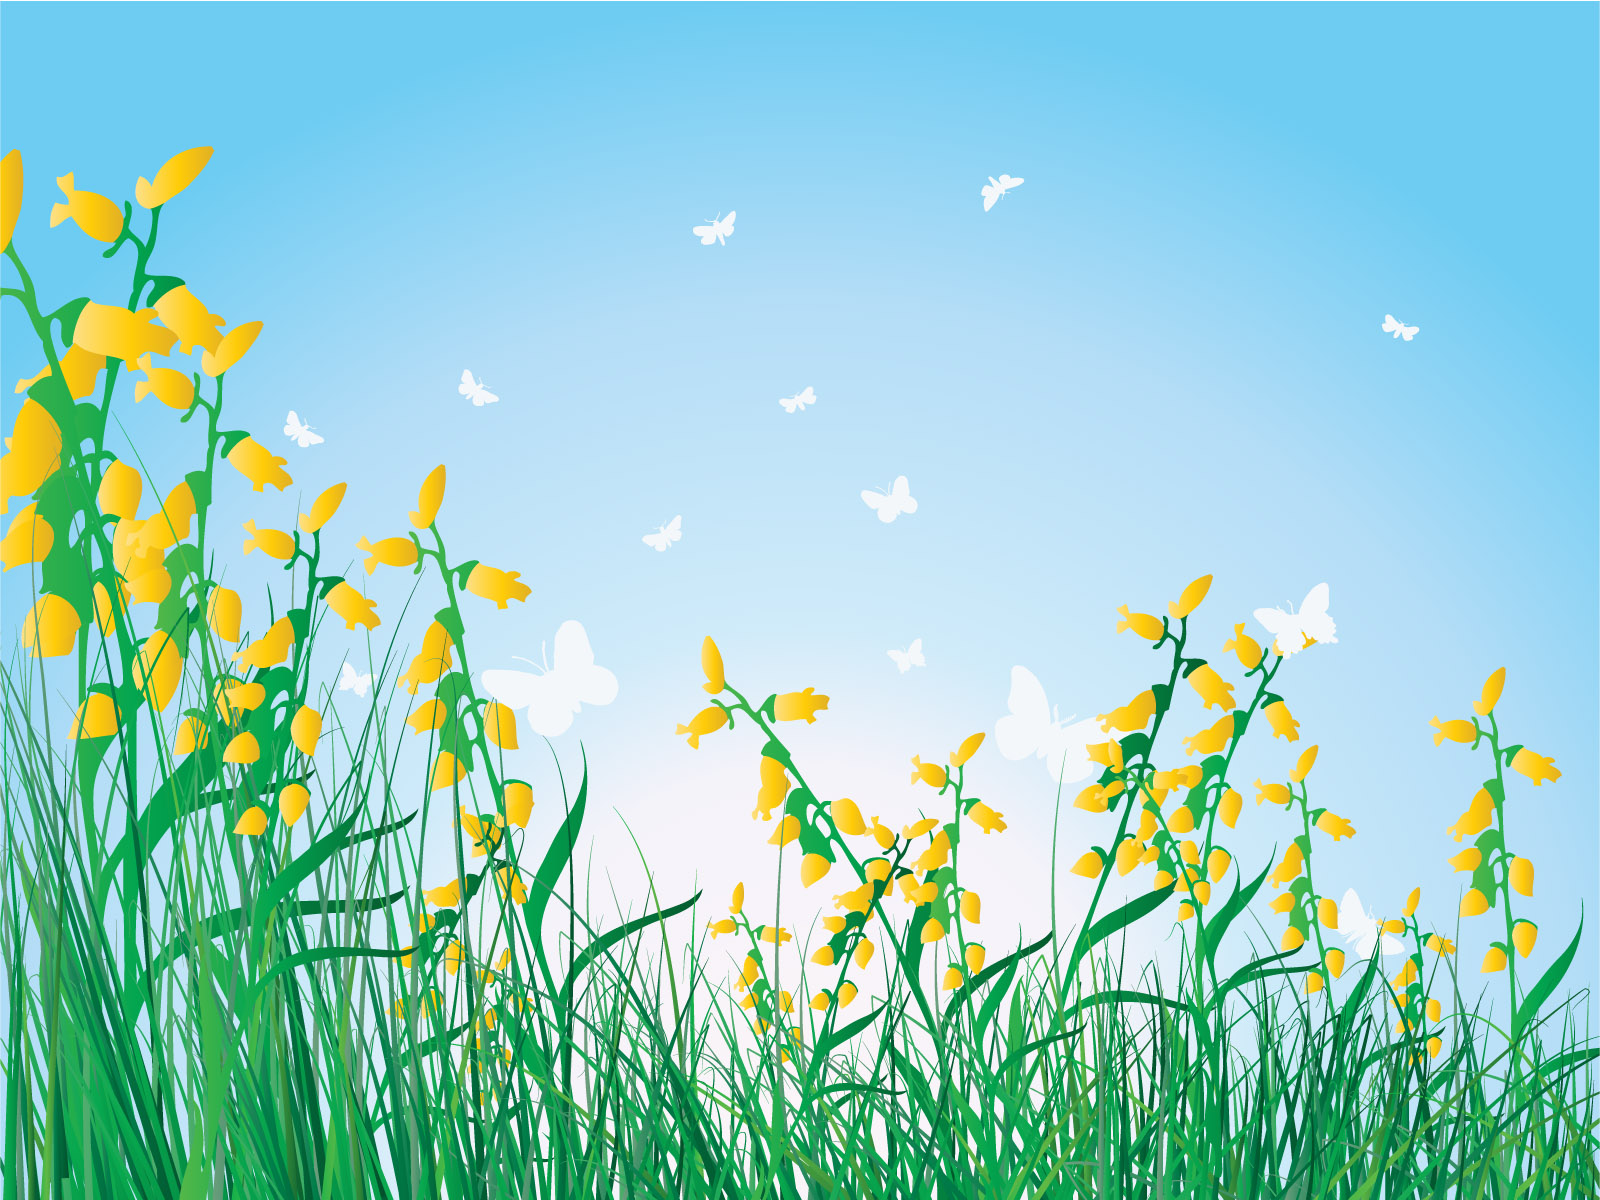 Grass flowers isolated sky PPT Backgrounds